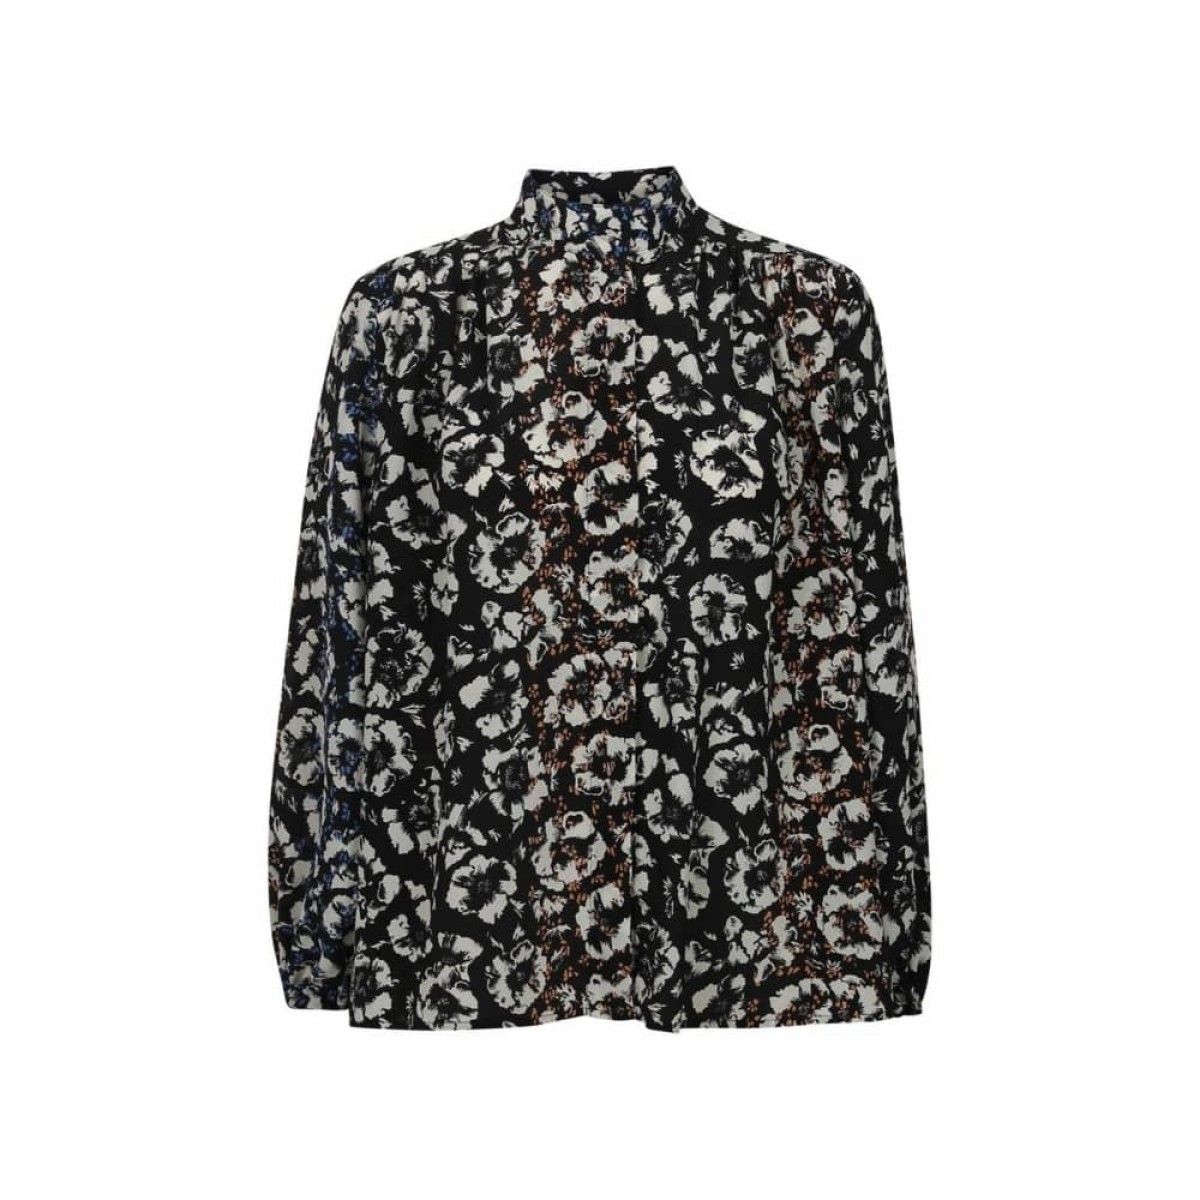 fifi bluse - black flowers - front